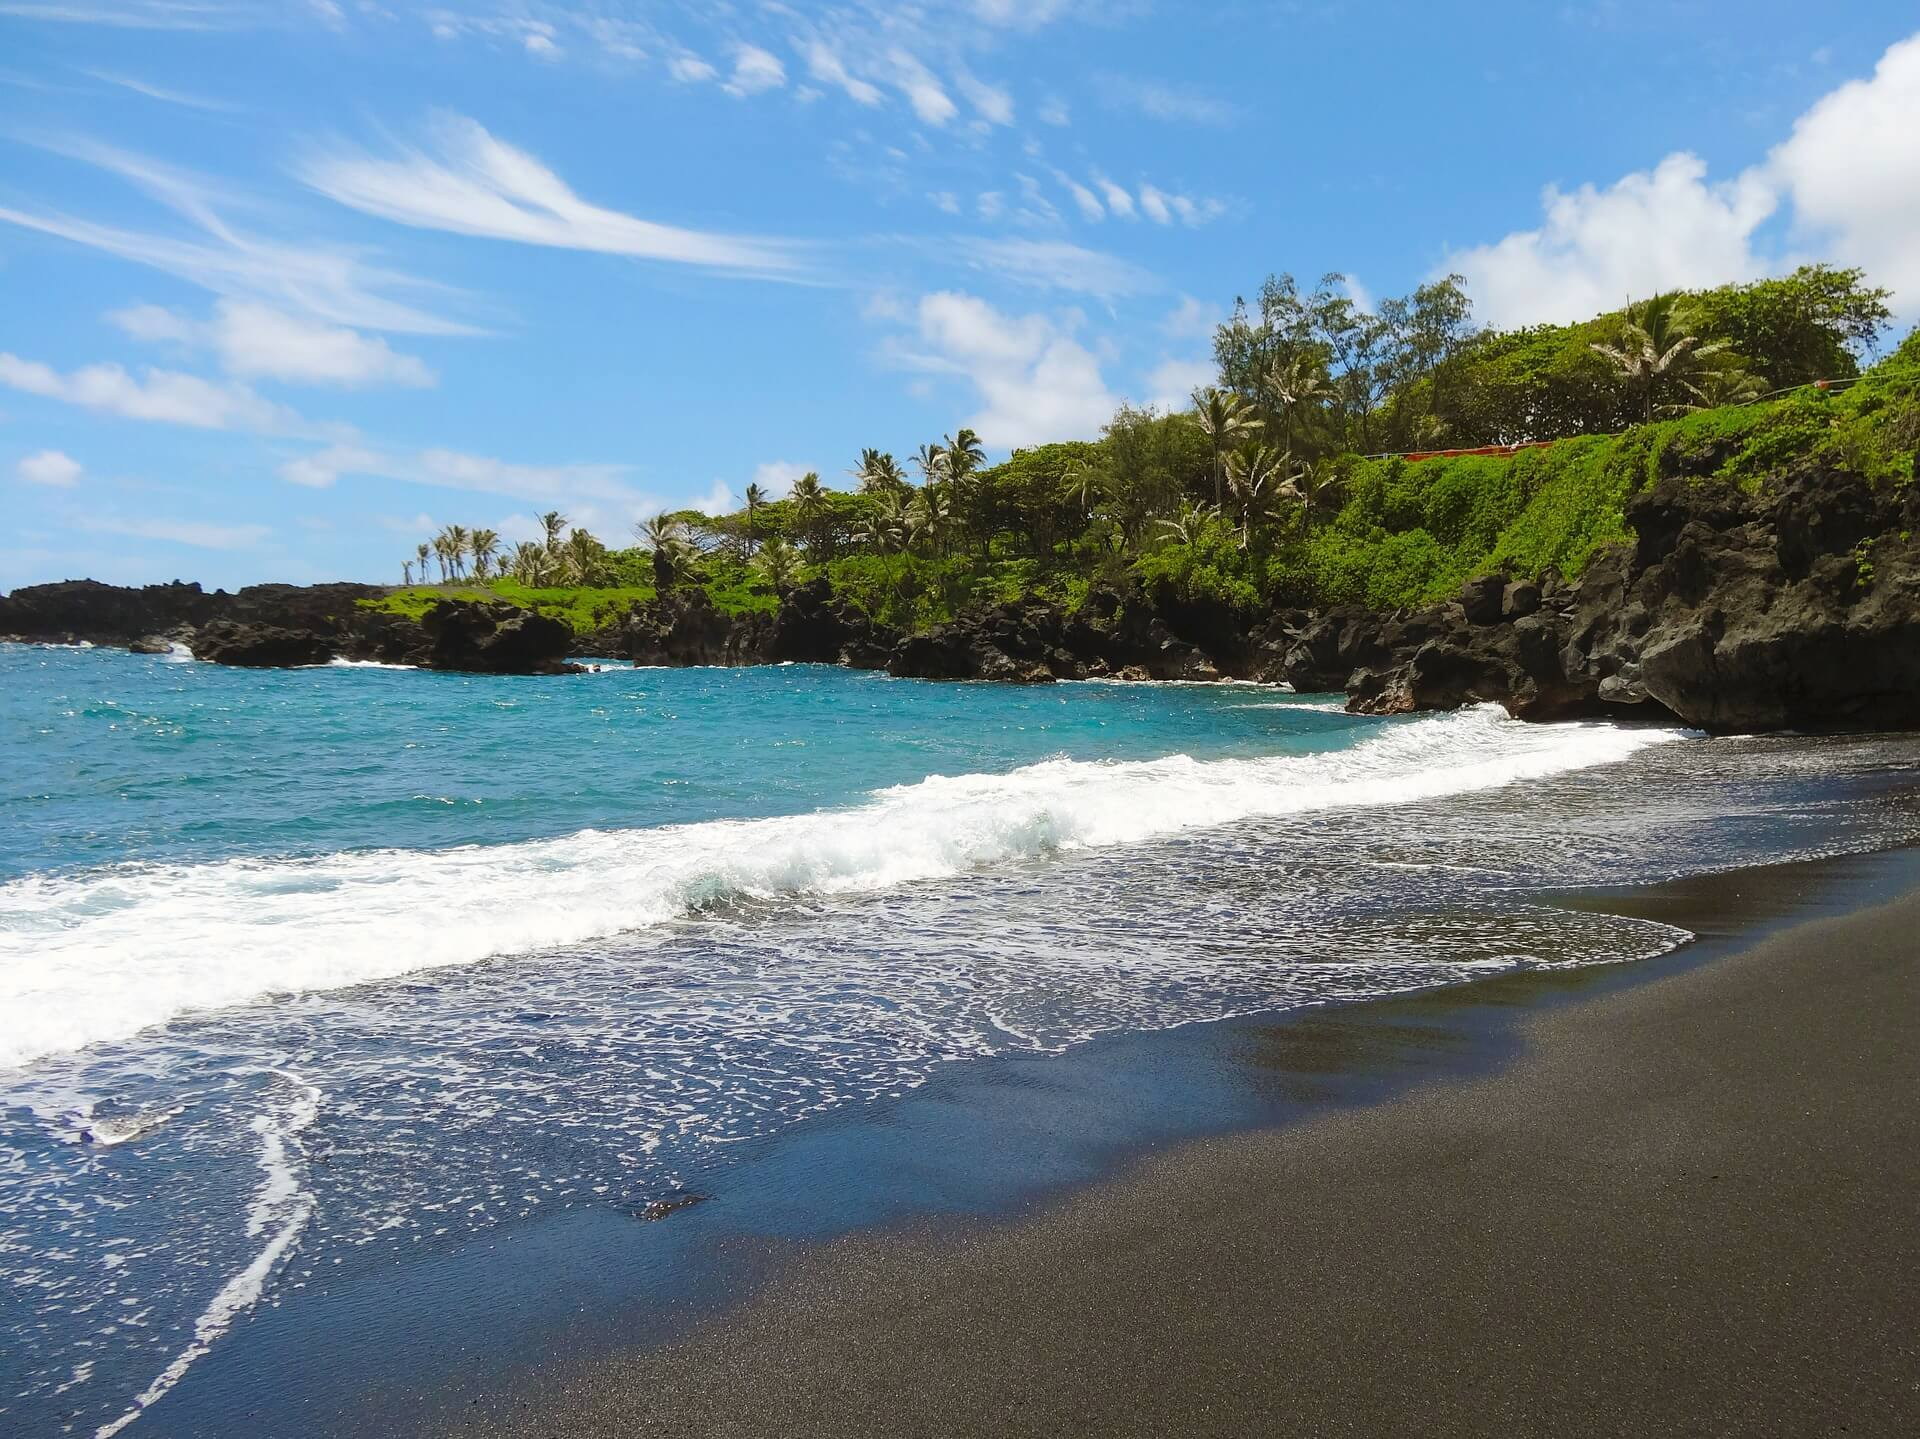 Wai'anapanapa Beach, Hawaii